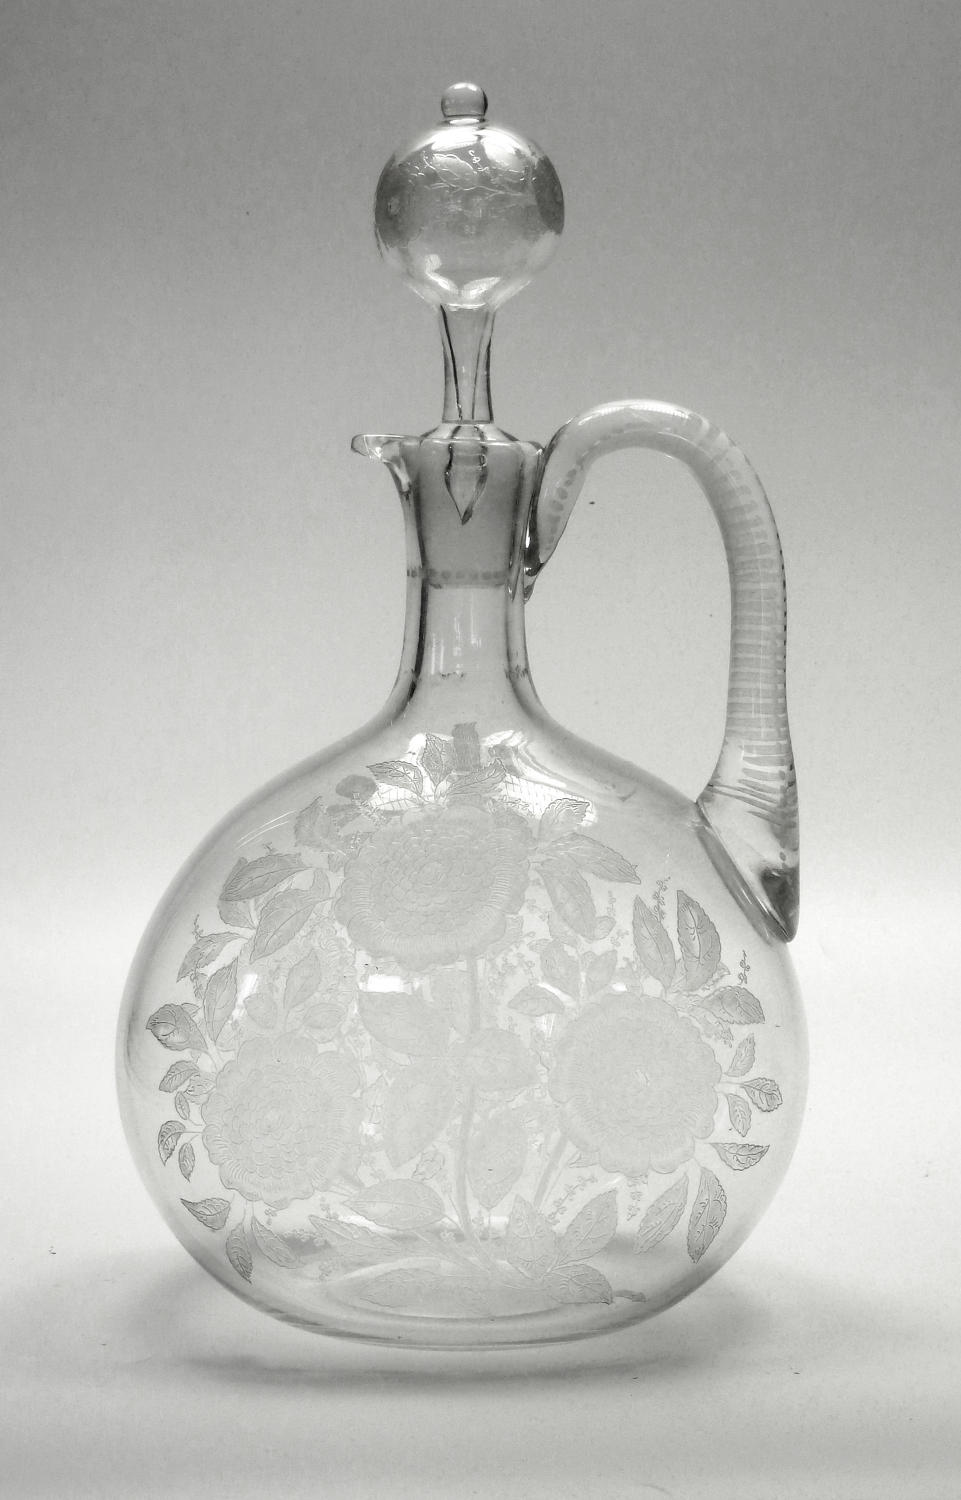 A fine etched, engraved and matted claret jug